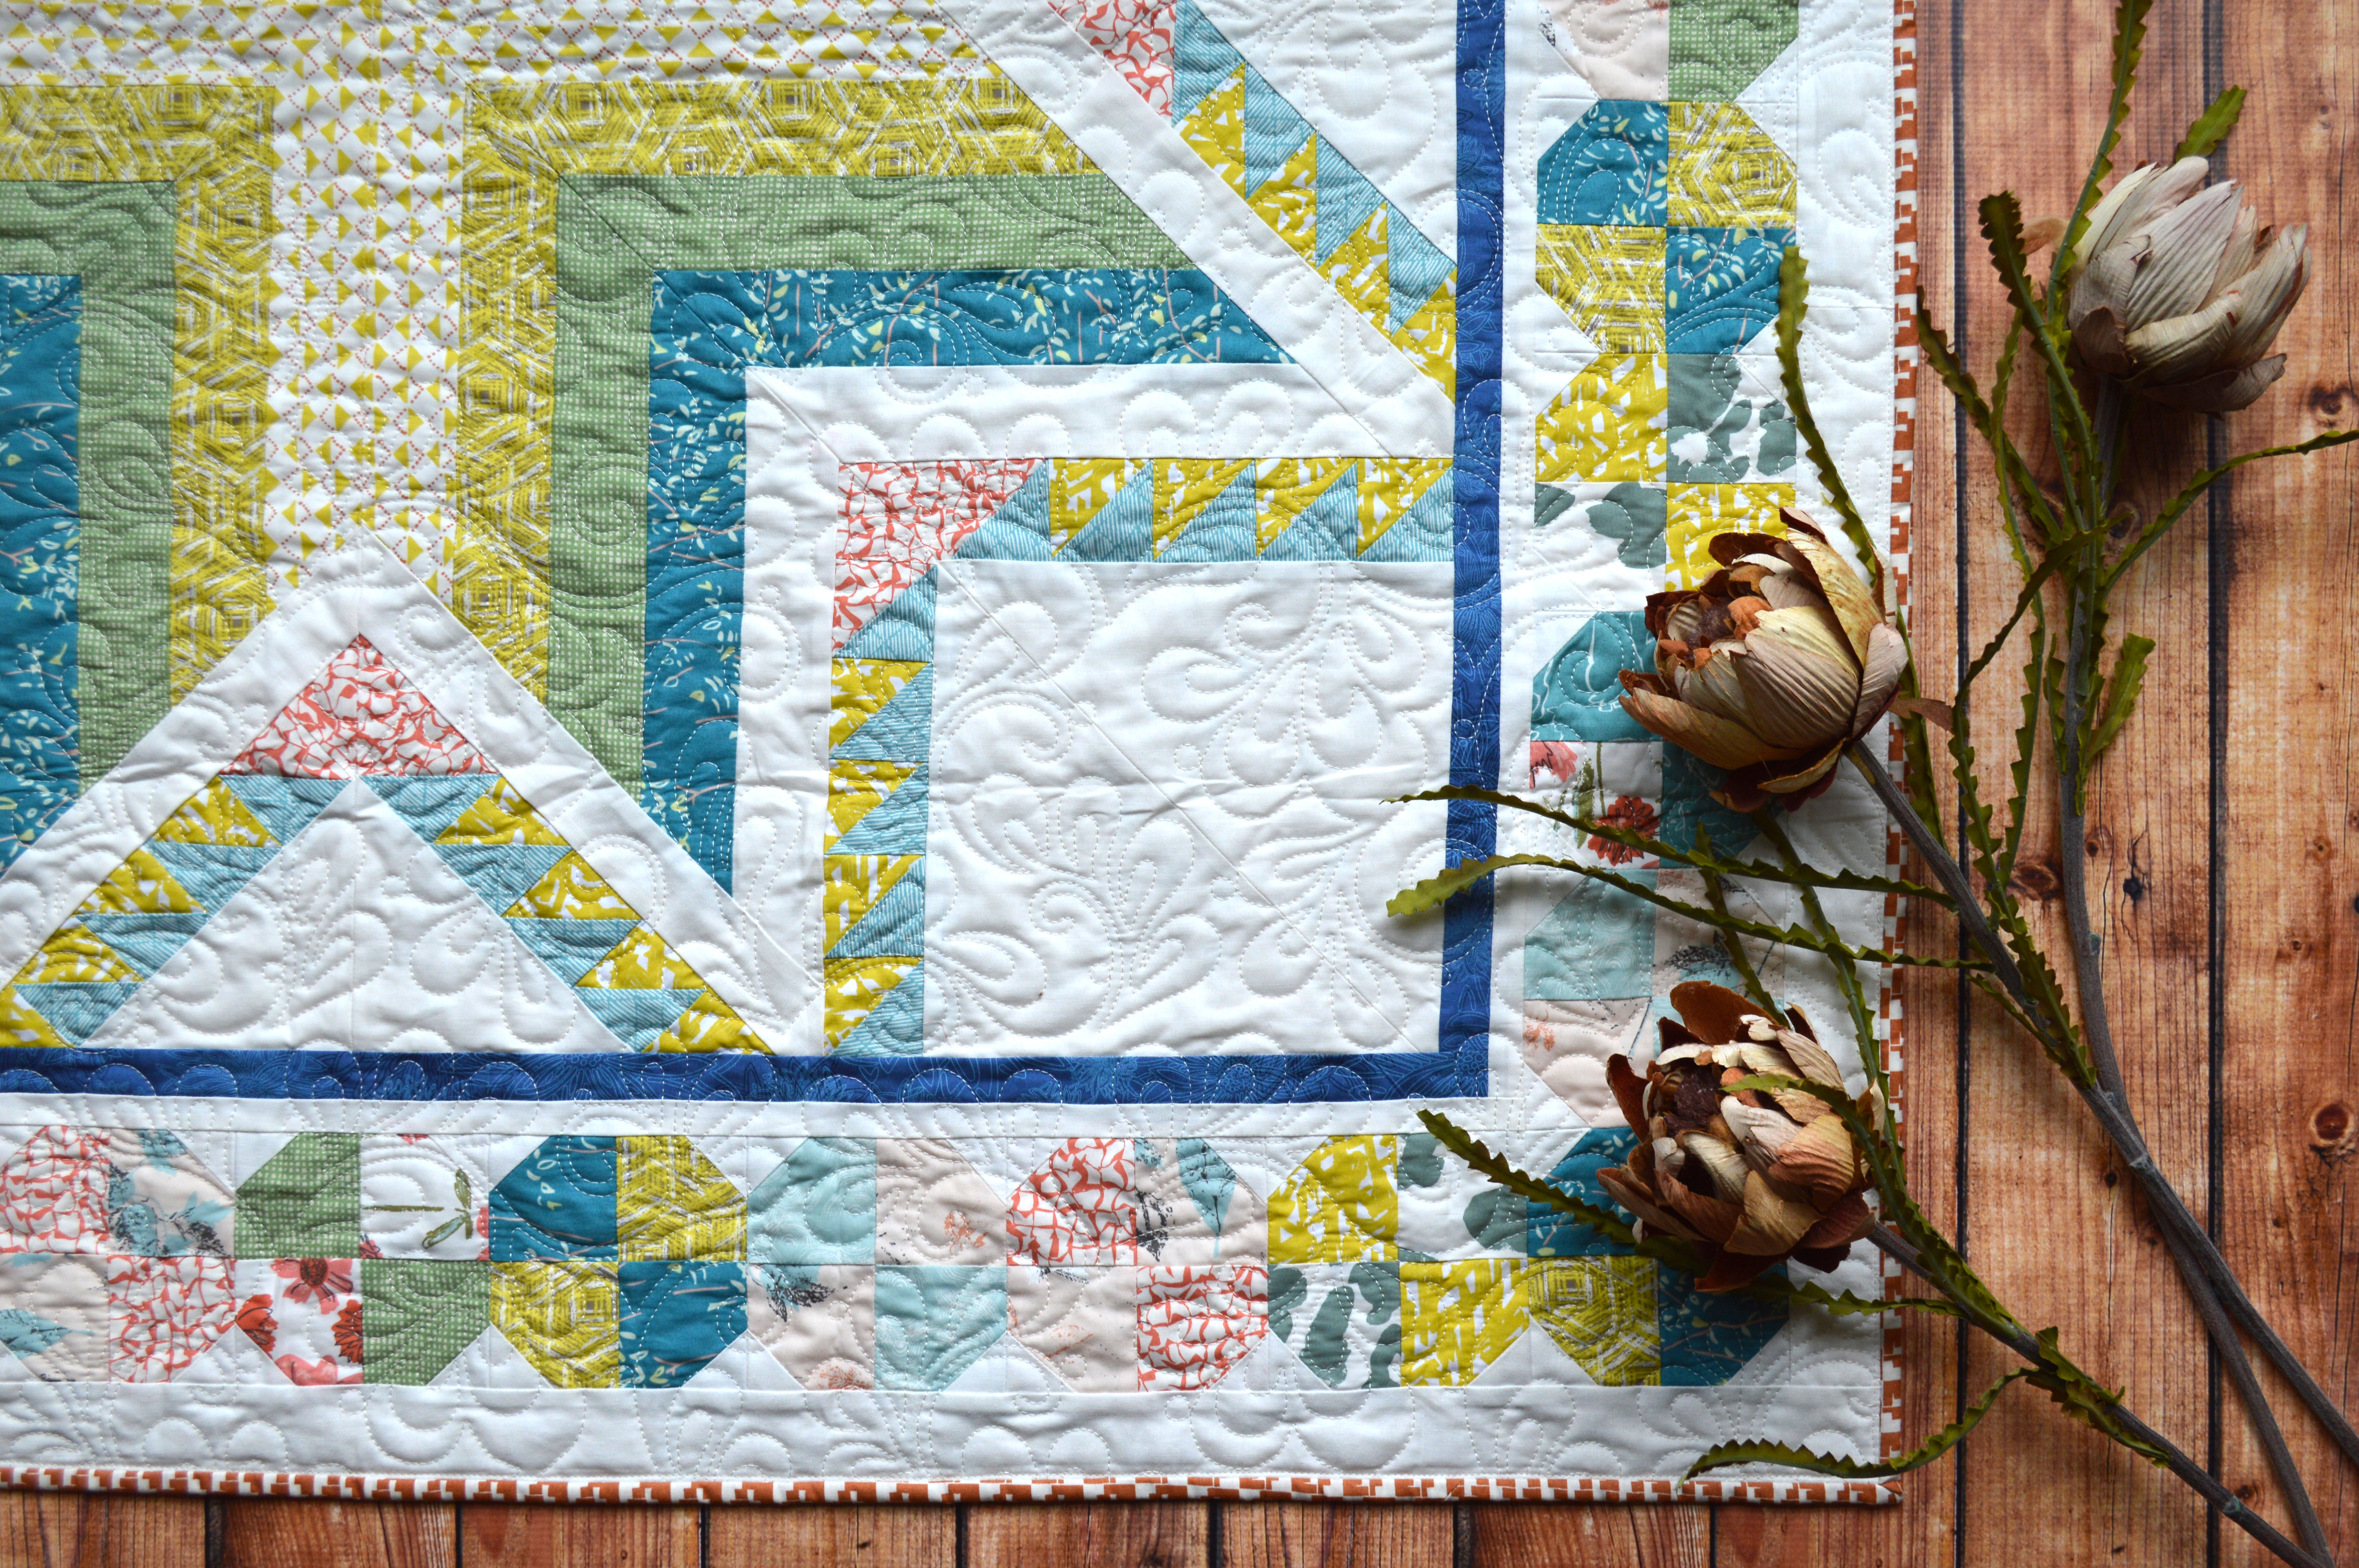 Pixie medallion quilt star with Bountiful fabrics by Art Gallery Fabrics